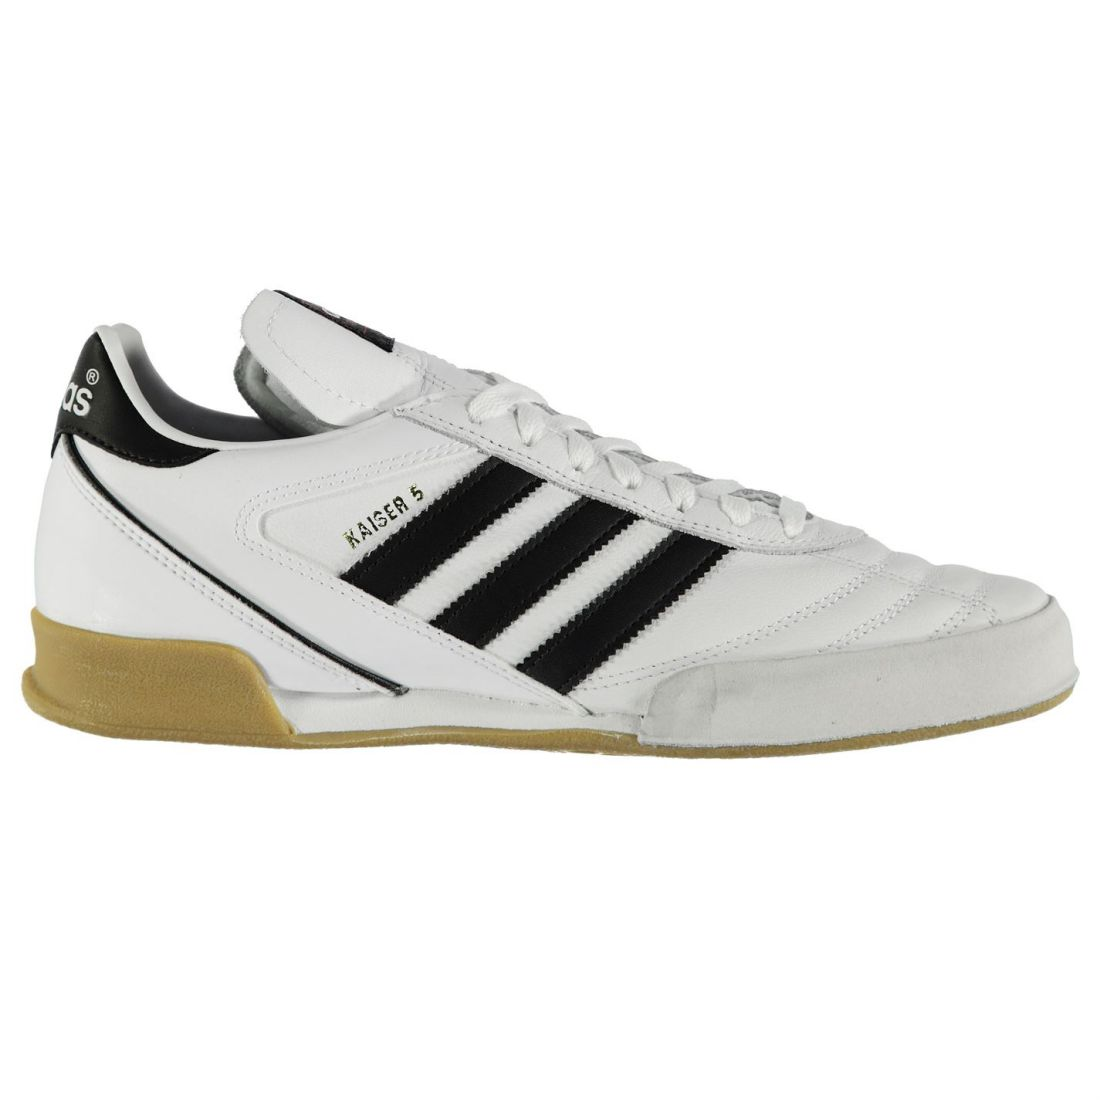 80ab96fdd0e adidas Mens Kaiser Goal Indoor Football Trainers Lace Up Leather ...